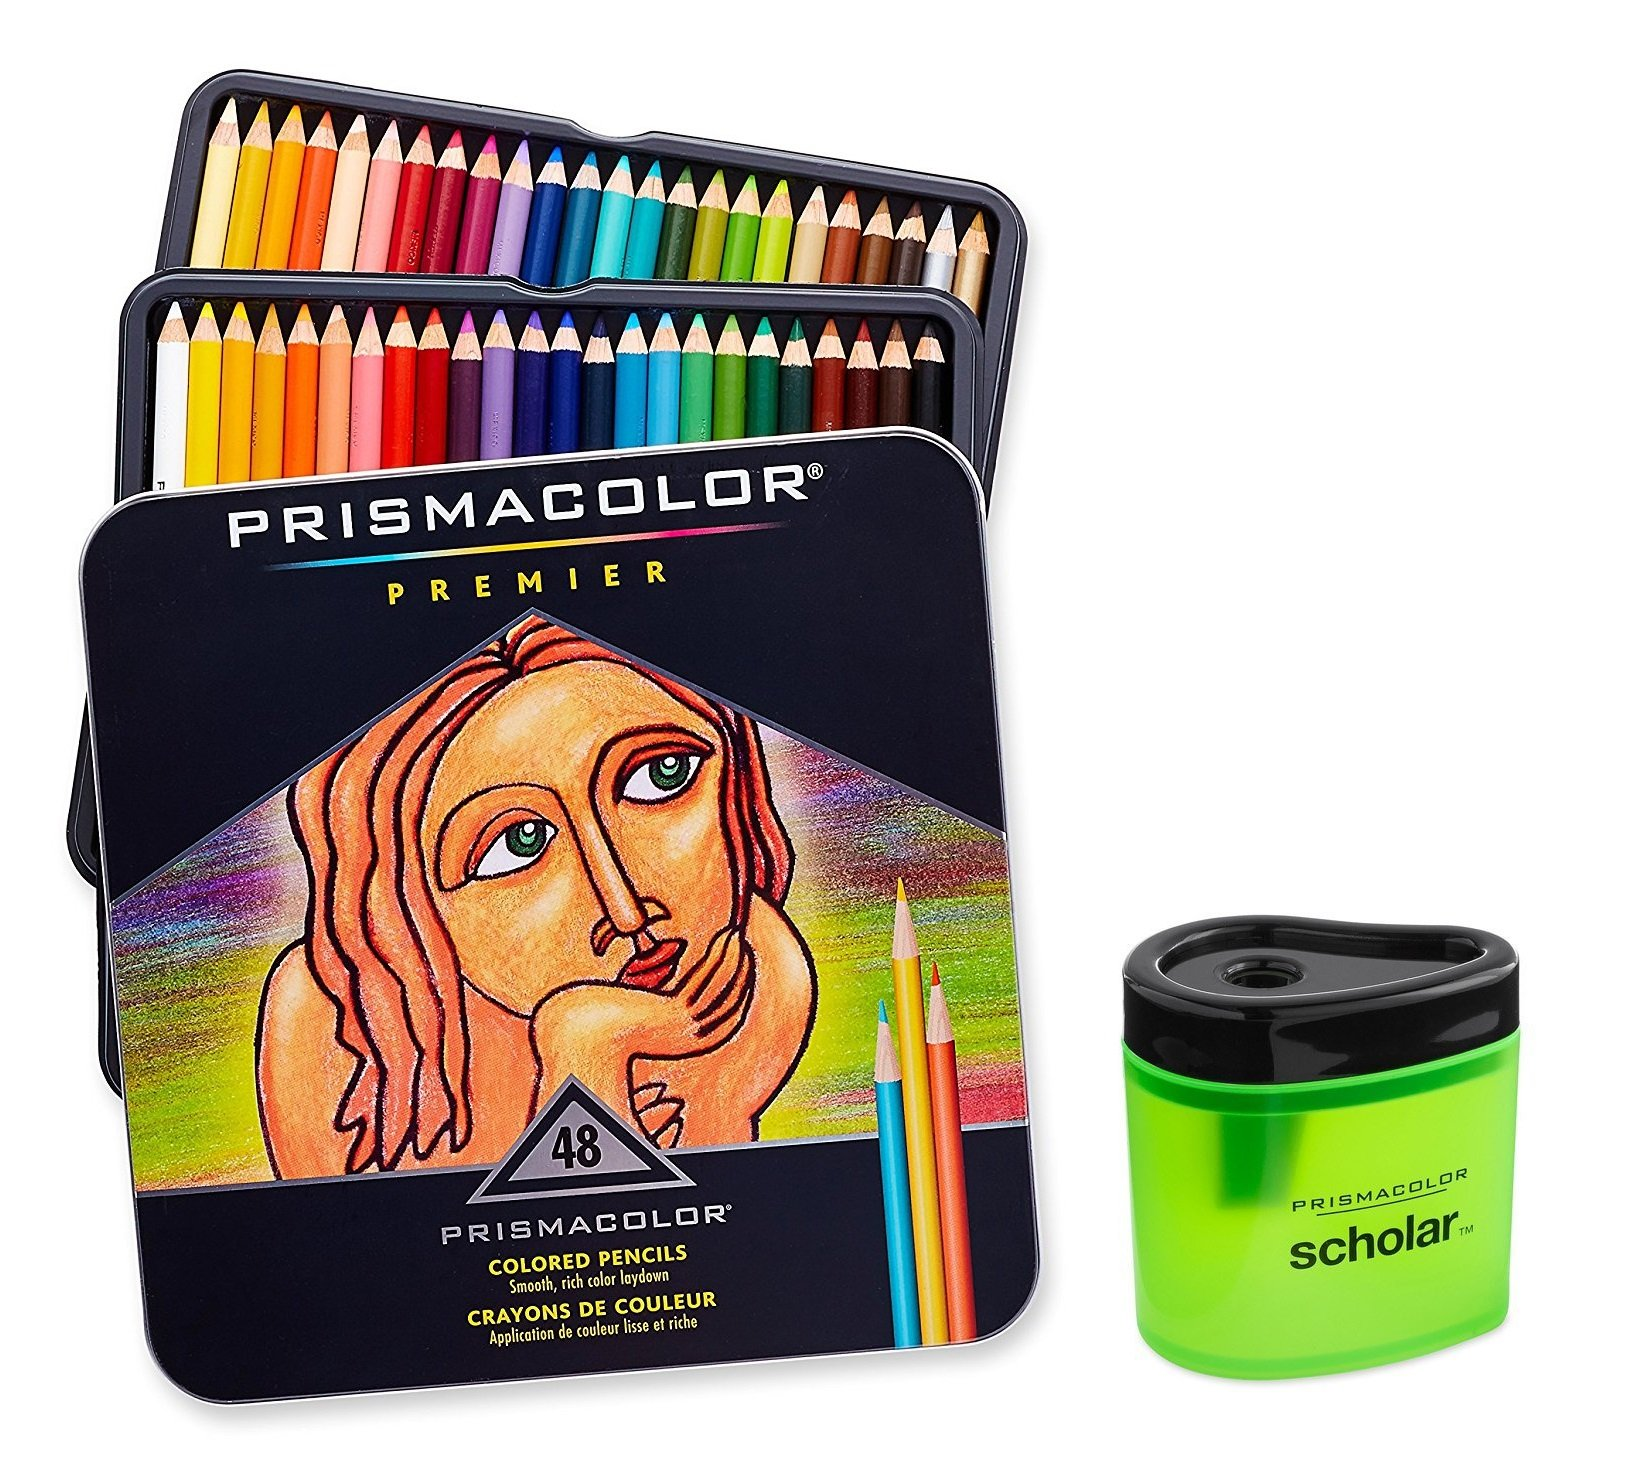 Prismacolor Premier Soft Core Colored Pencil, Set of 48 Assorted Colors (3598T) + Prismacolor Scholar Colored Pencil Sharpener (1774266) by Prismacolor